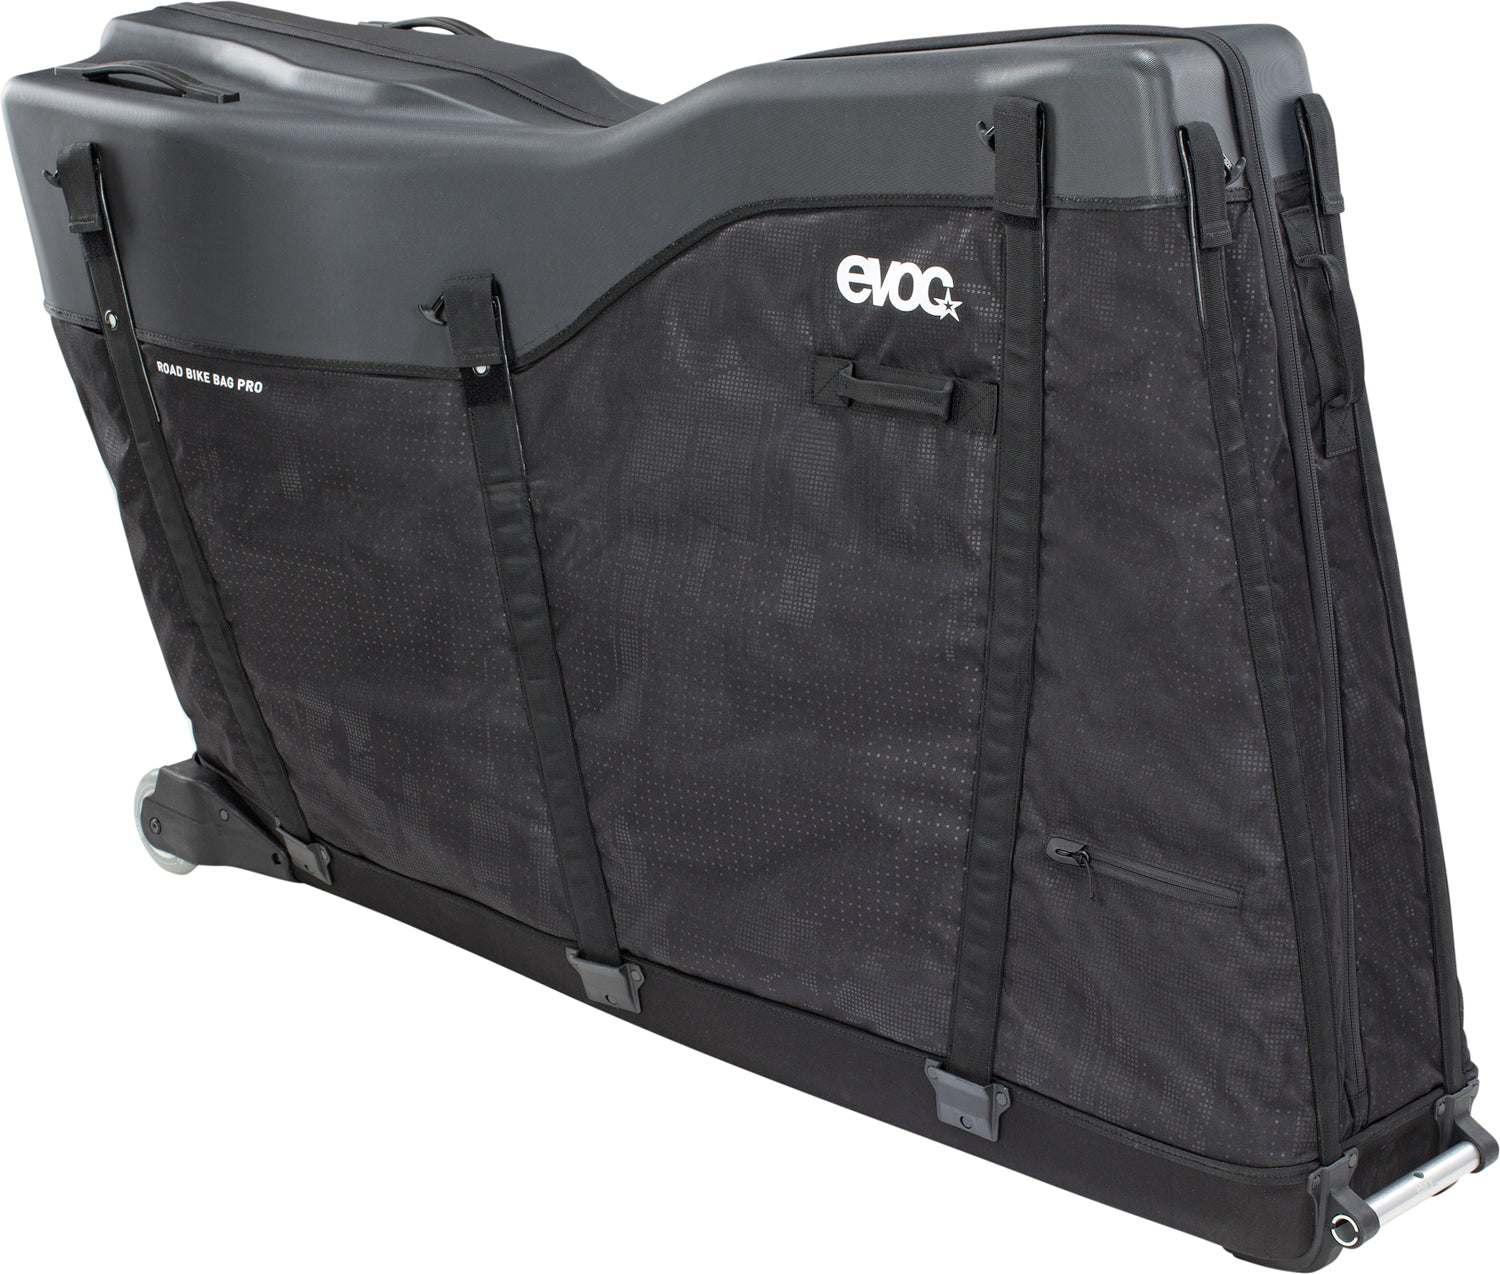 Maleta Evoc Ruta y Triatlón Bike Bag Pro Black